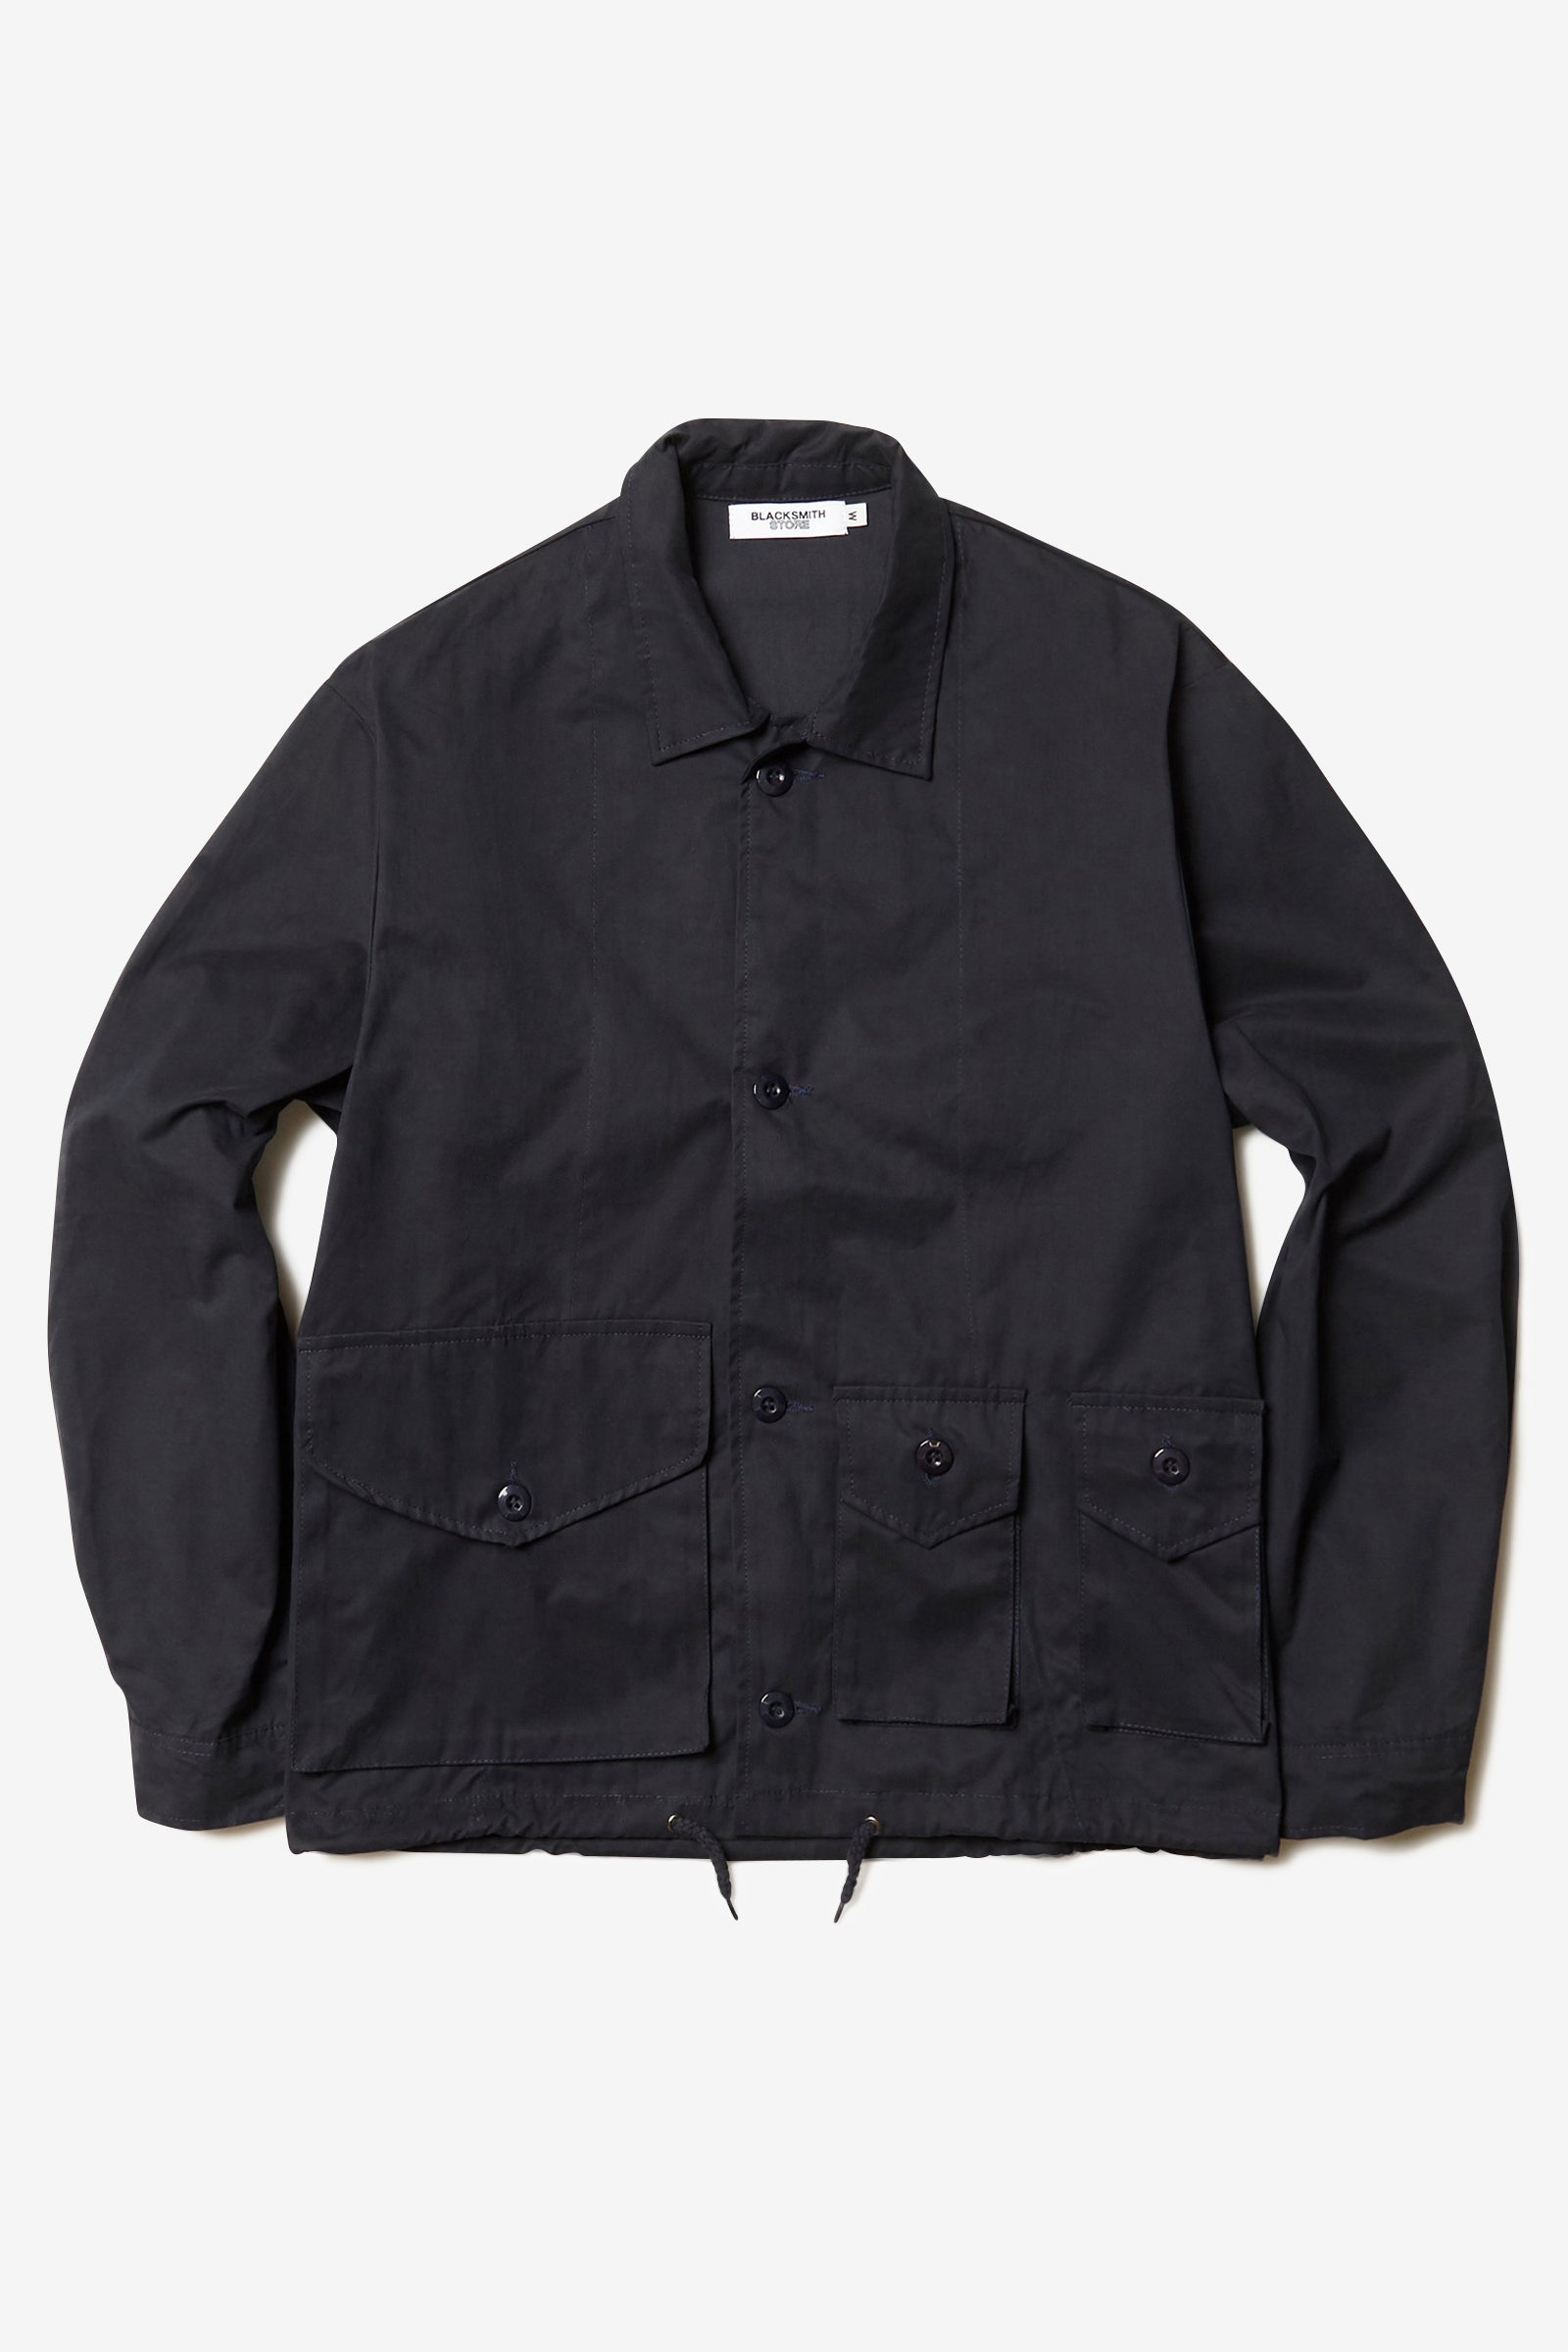 Blacksmith - Service Blouson Jacket - Navy